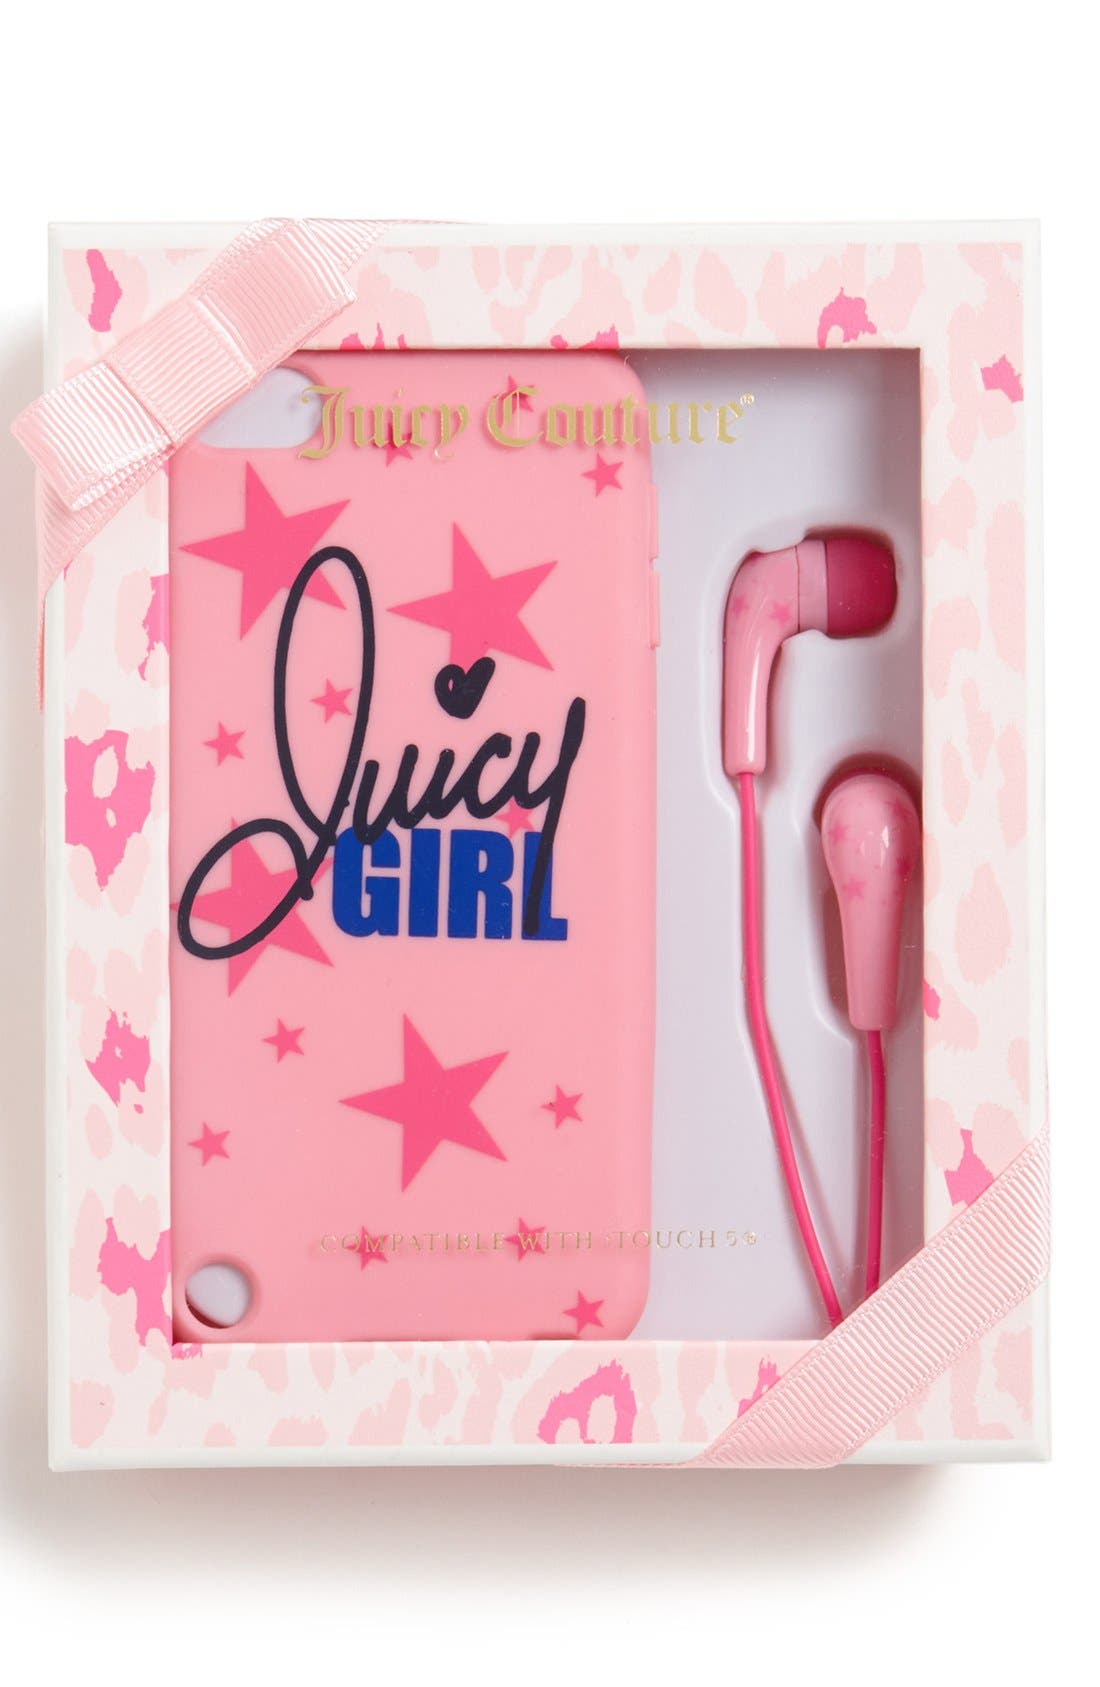 Alternate Image 1 Selected - Juicy Couture 'Stars' iPhone 5/5s Case & Earbuds